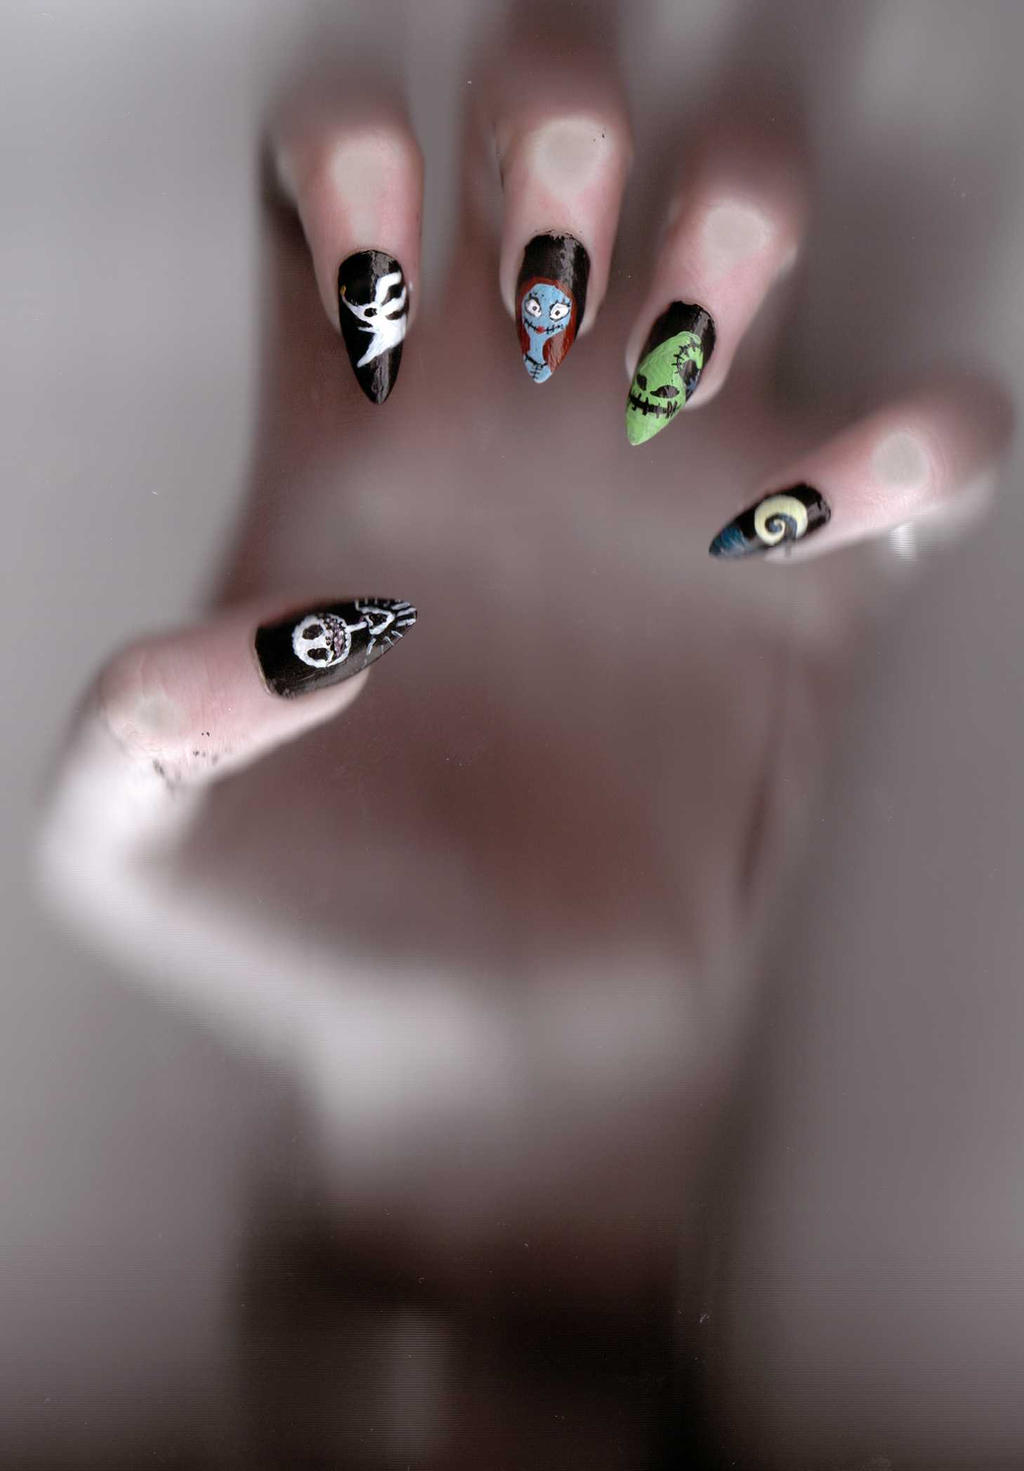 The Nightmare Before Christmas Nail Art by BlueHorizon89 on DeviantArt